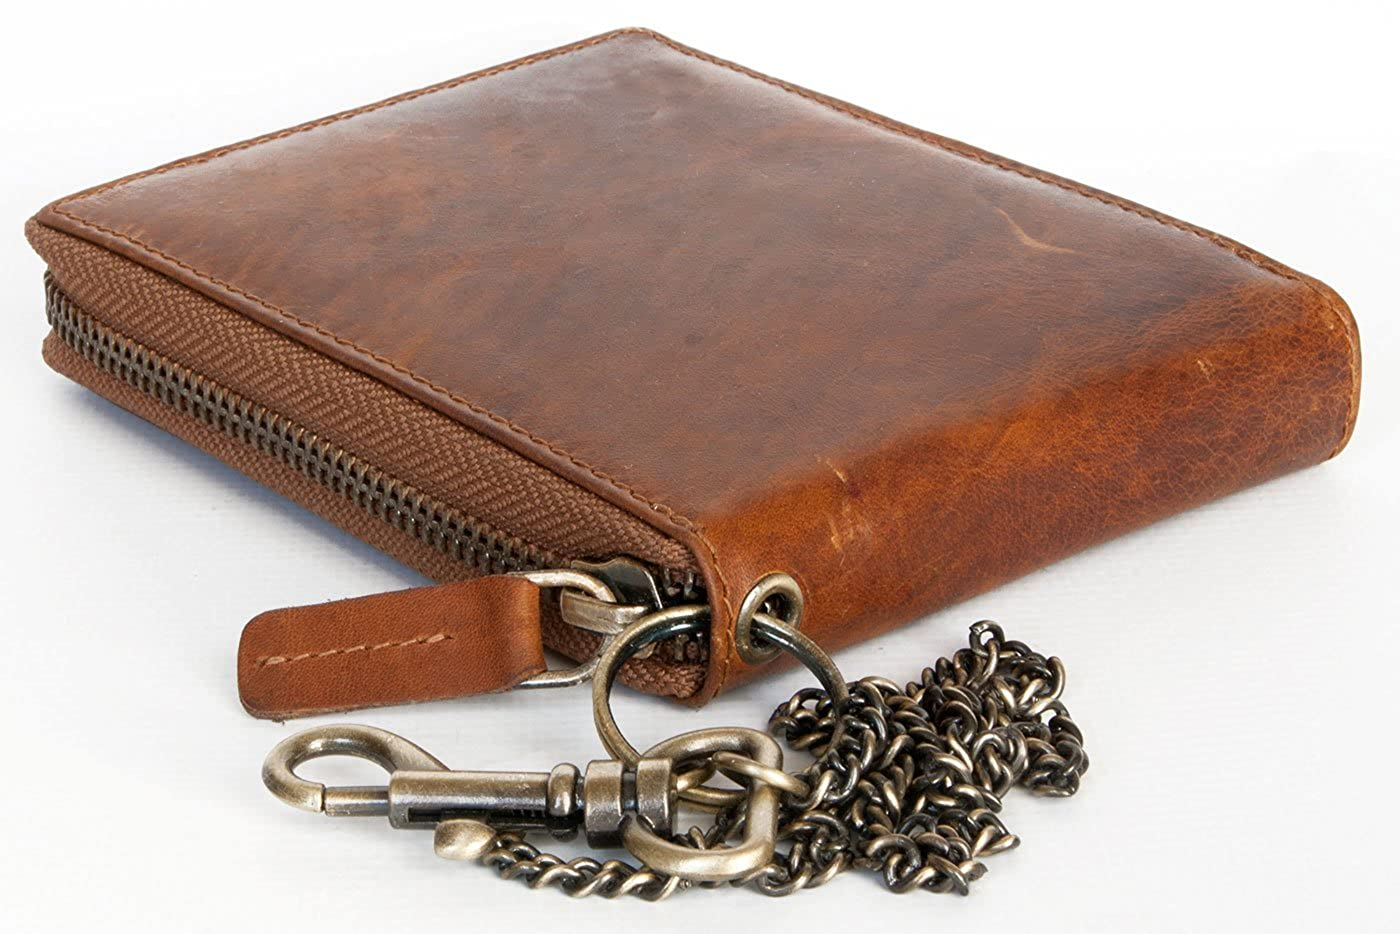 Glazed Genuine Leather Wallet with Metal Zipper Around and Chain